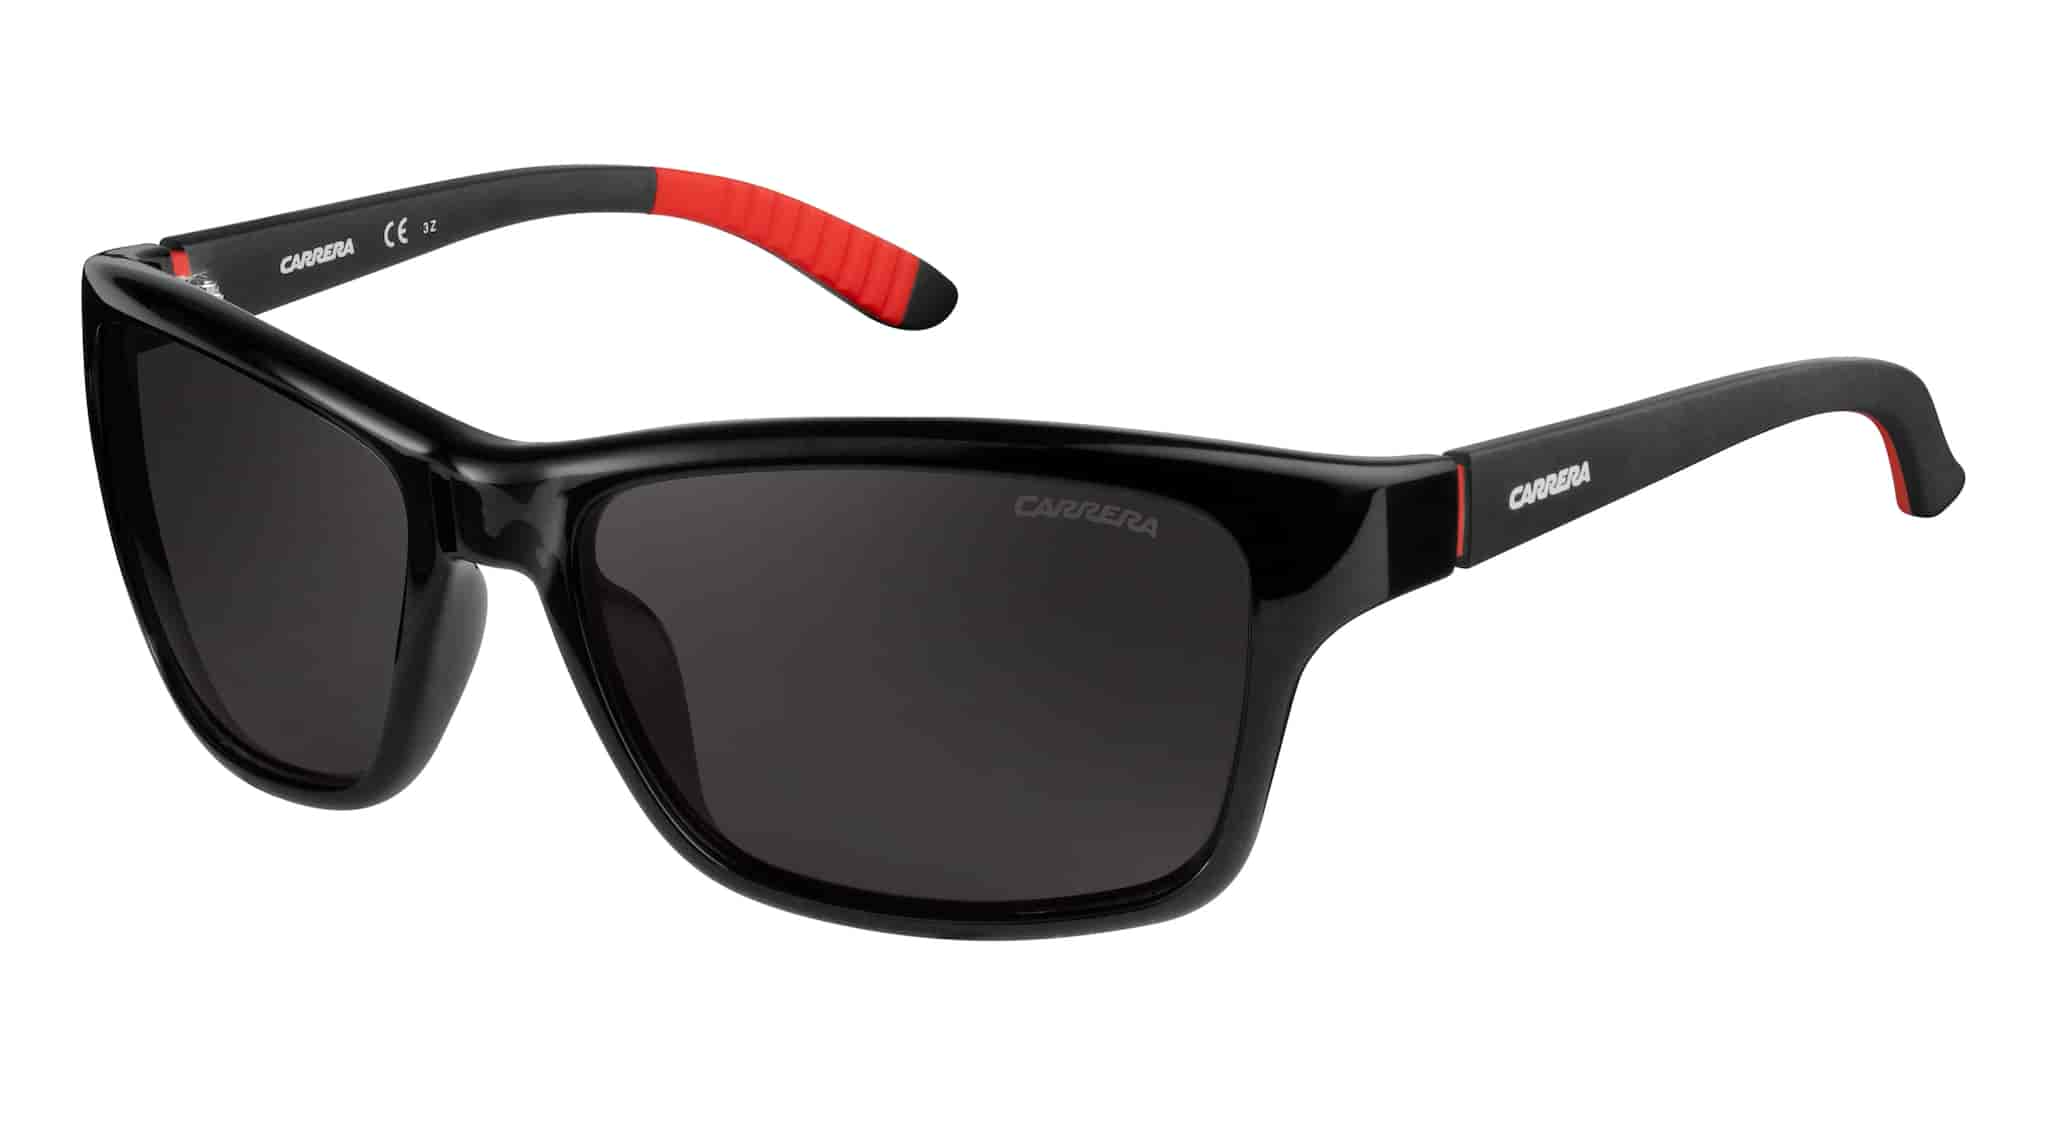 Carrera Sunglasses Price In India  carrera 8013 s men sunglasses black 247623d2858m9 features